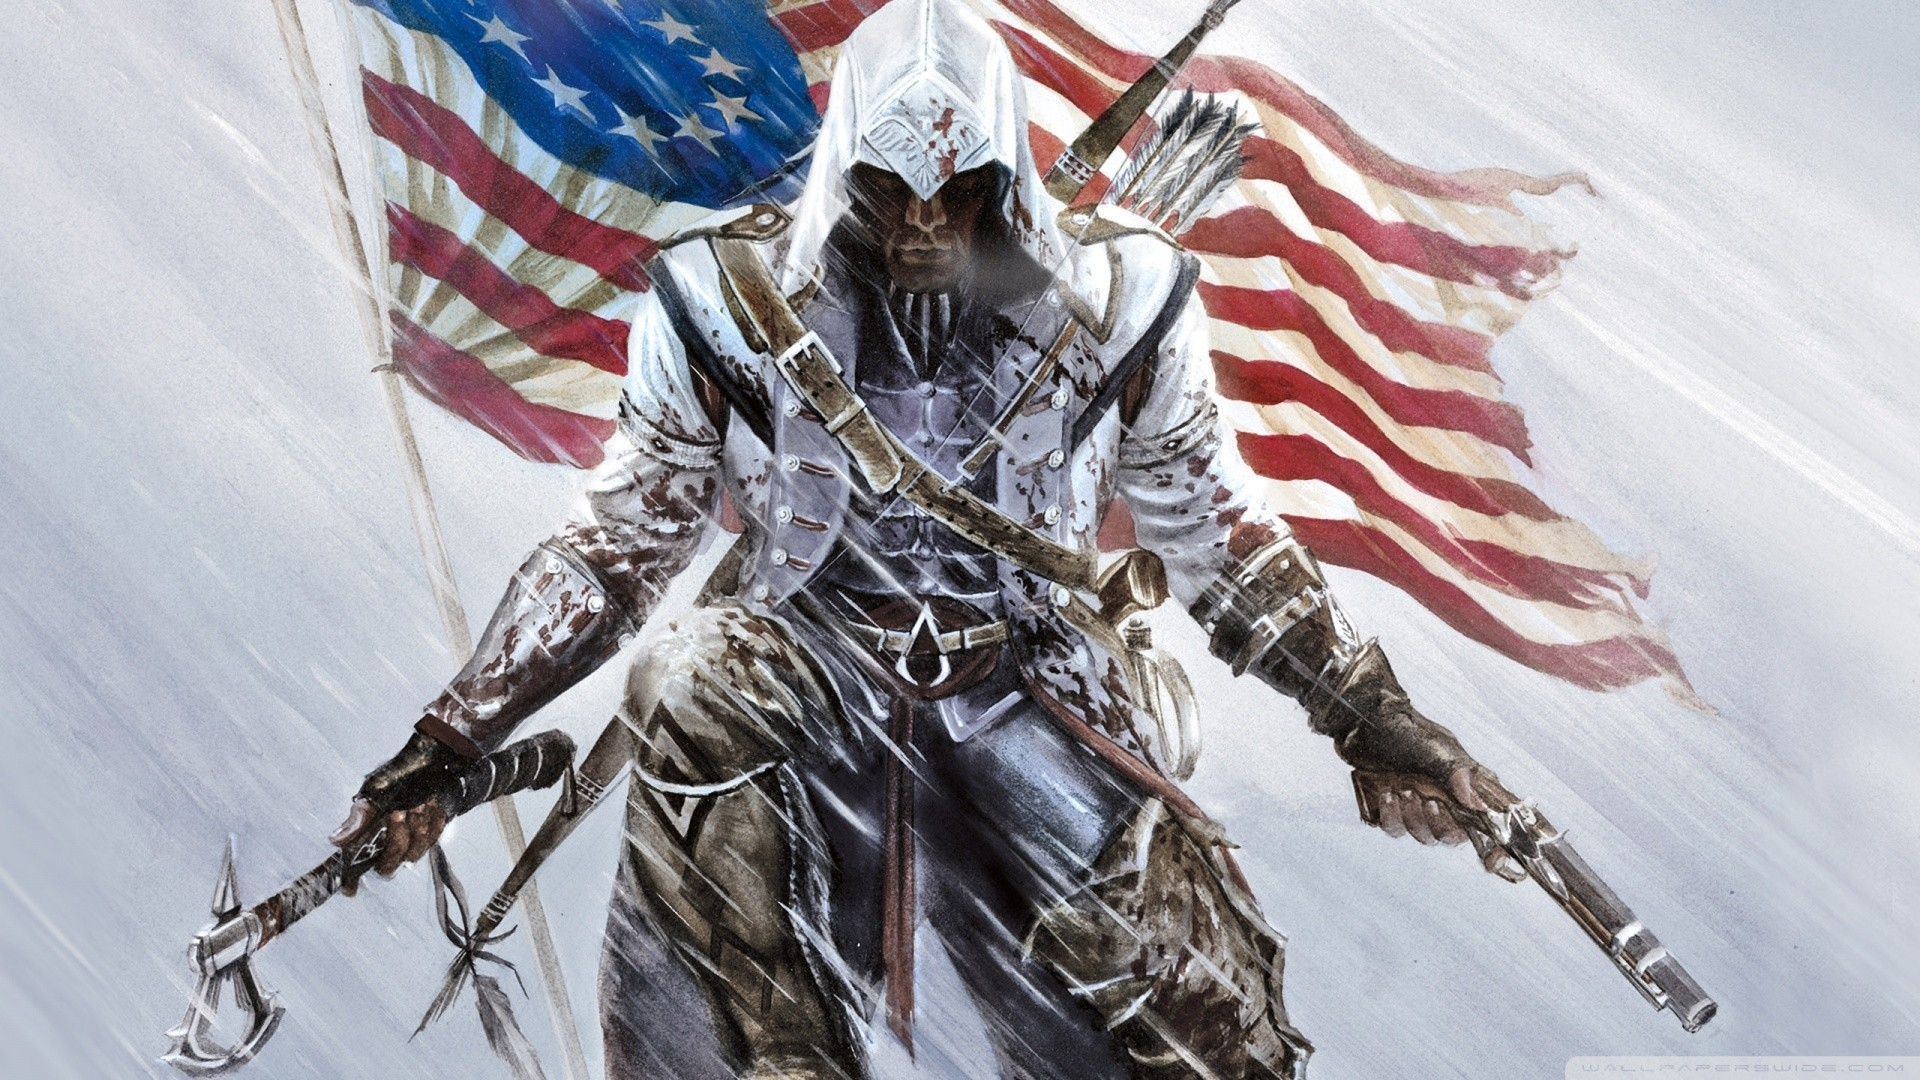 image assassins creed 3 wallpapers psiwiki. Black Bedroom Furniture Sets. Home Design Ideas